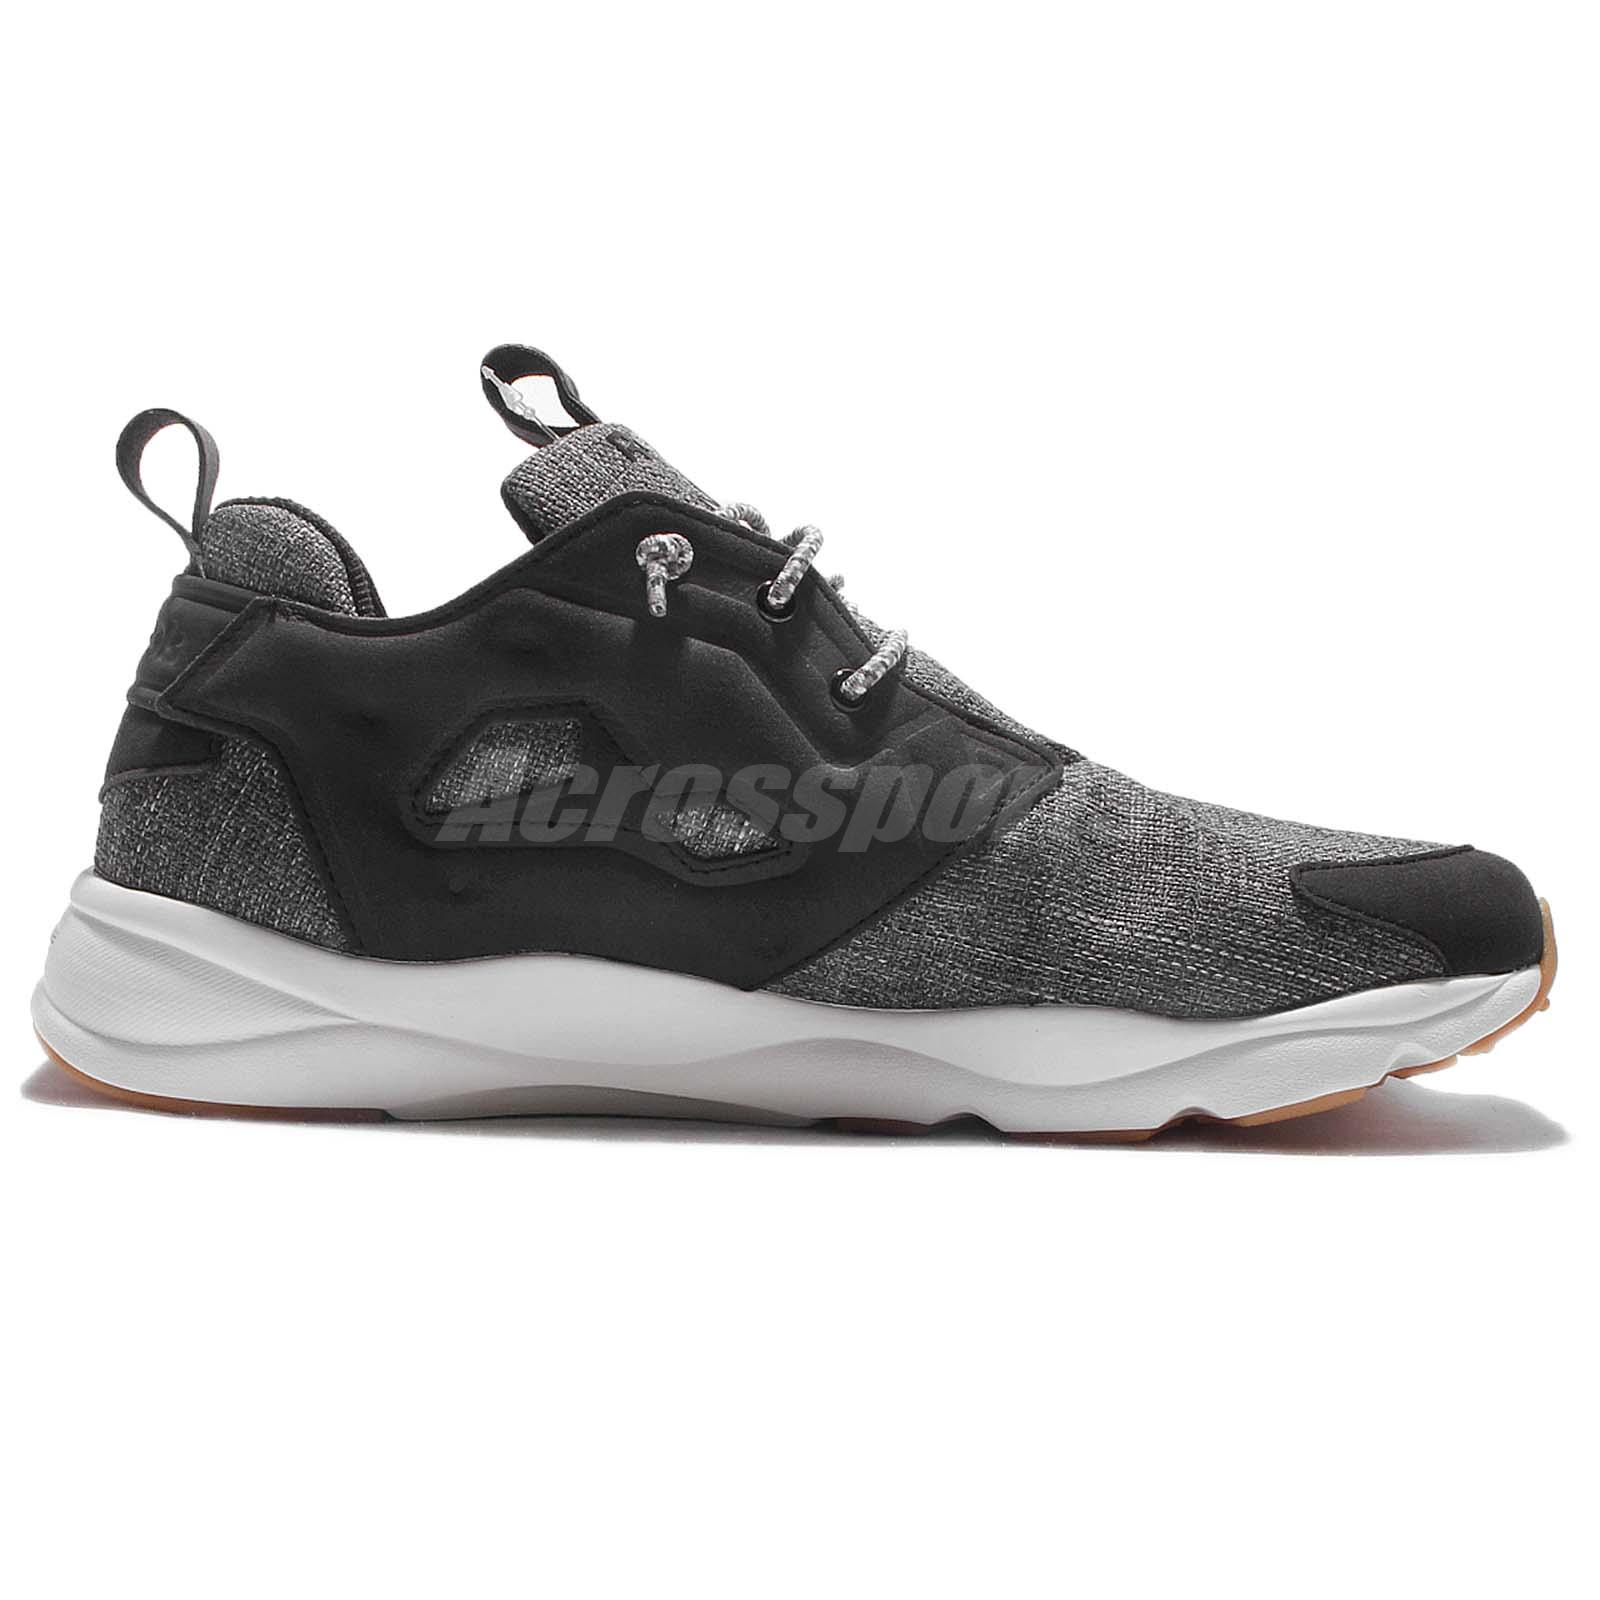 4d895b138ad2fc ... Reebok Furylite SP CQ Grey Steel Grade School Boys Casual Shoes  Sneakers AR3318 Condition  Brand New With Box ...